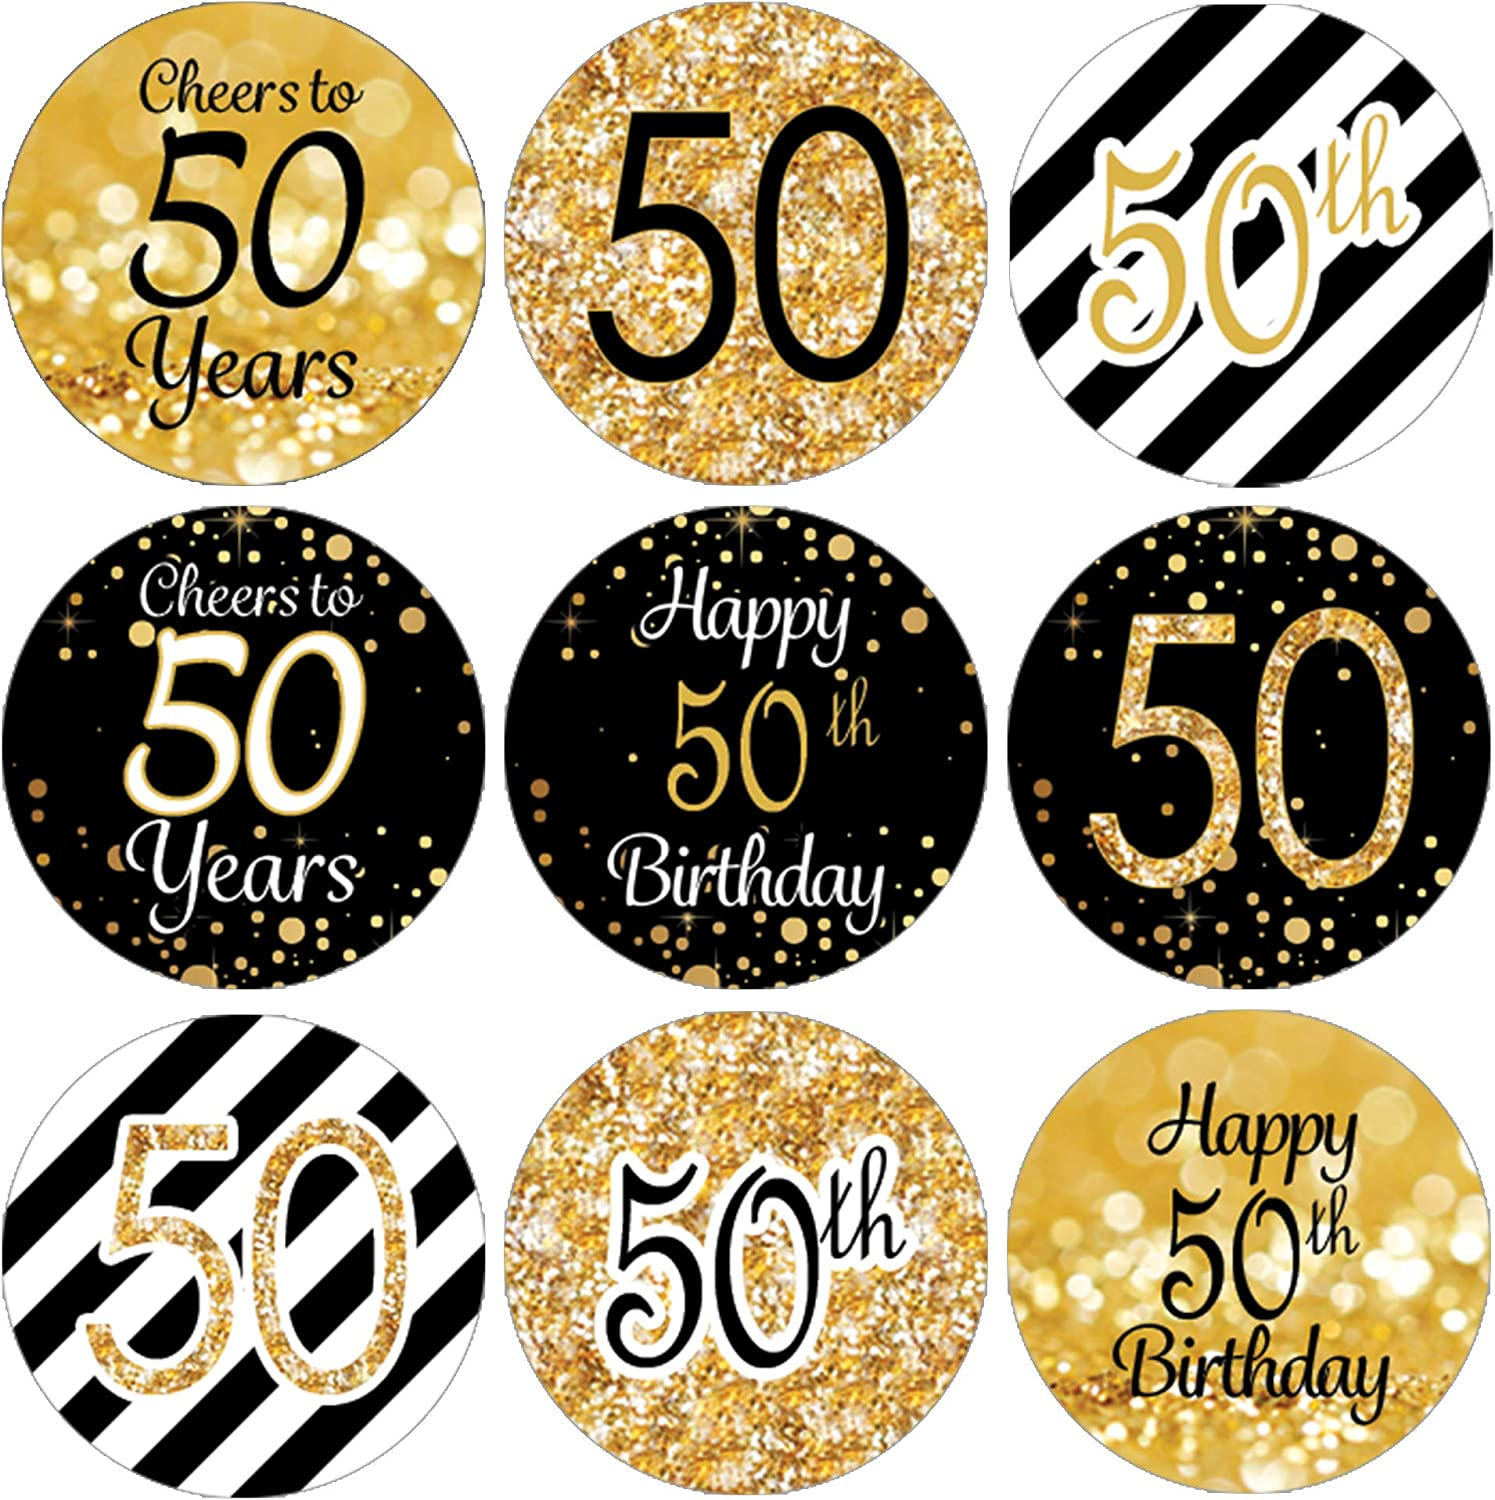 50TH BIRTHDAY PARTY FAVORS STICKERS  for lollipops  goody bags favor boxes,